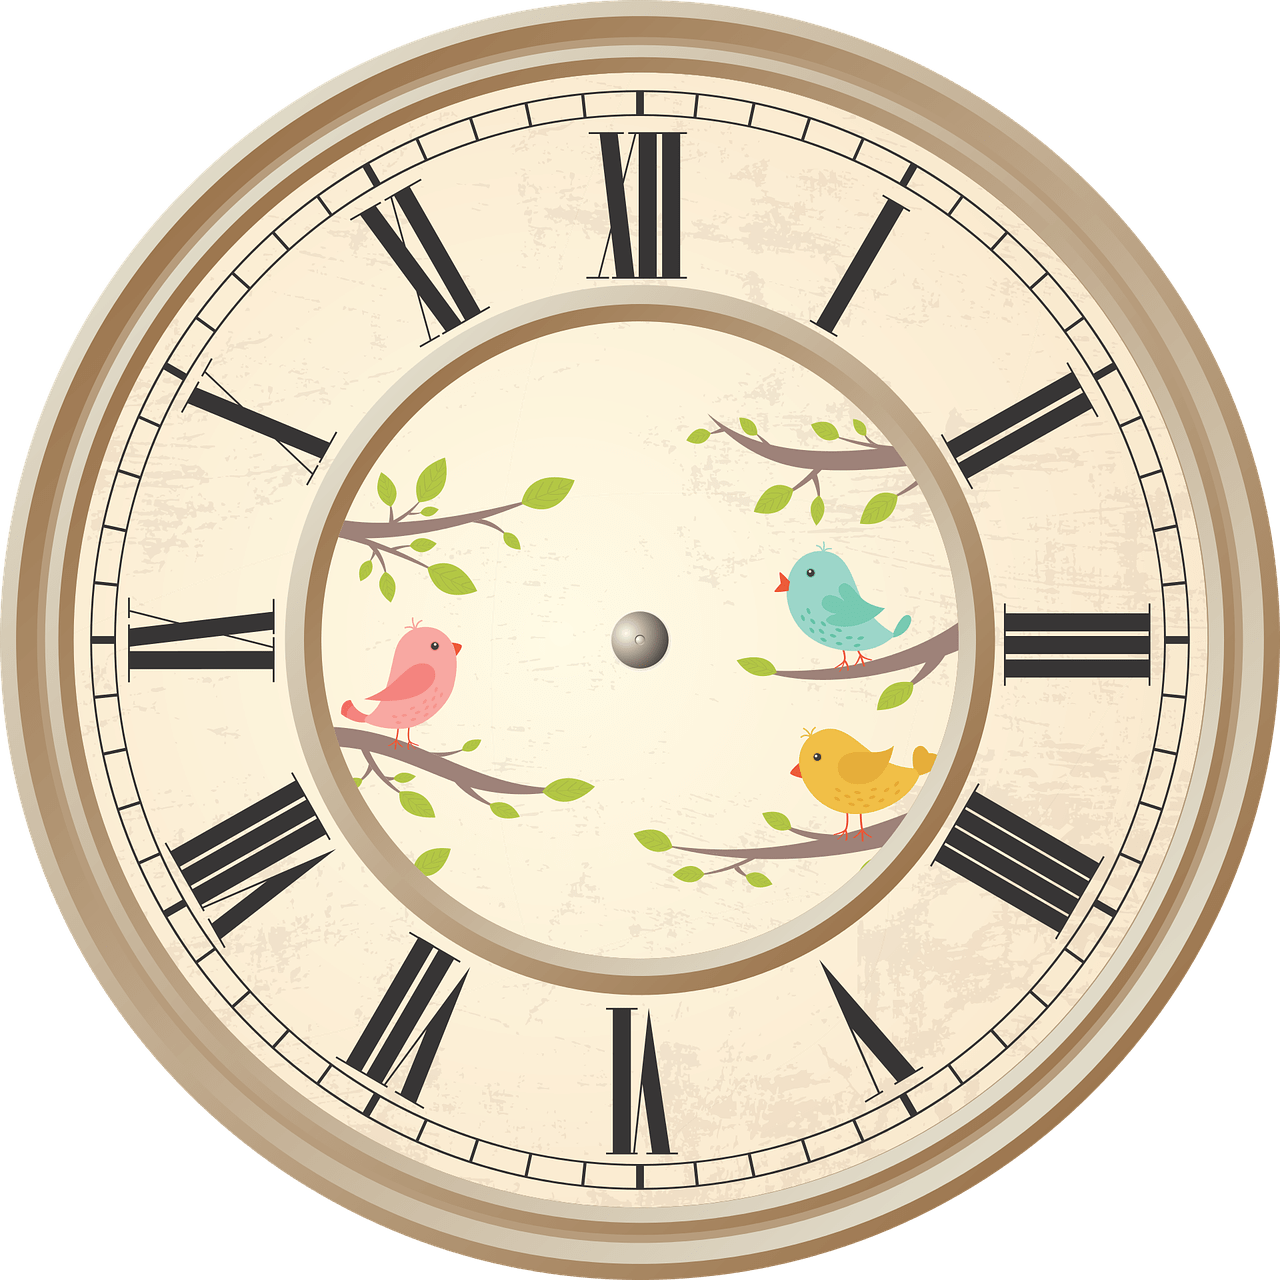 Clock clipart roman numerals. Birds transparent png stickpng